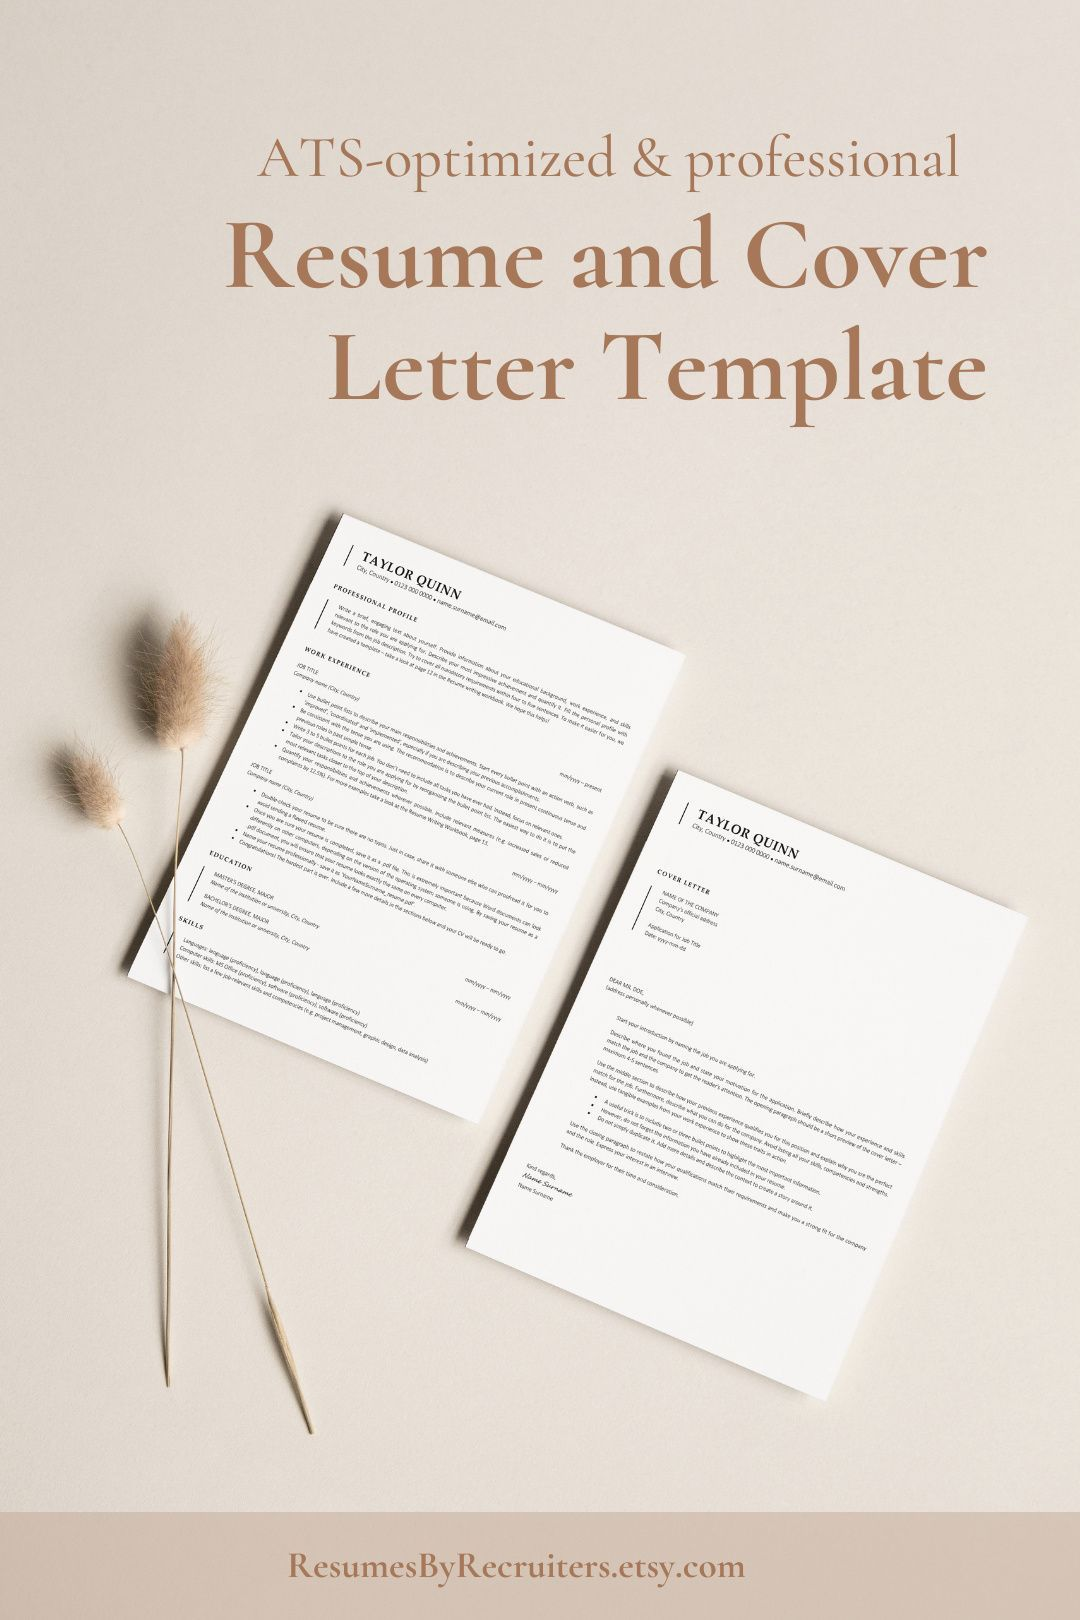 Ats Resume Template Word Free Download